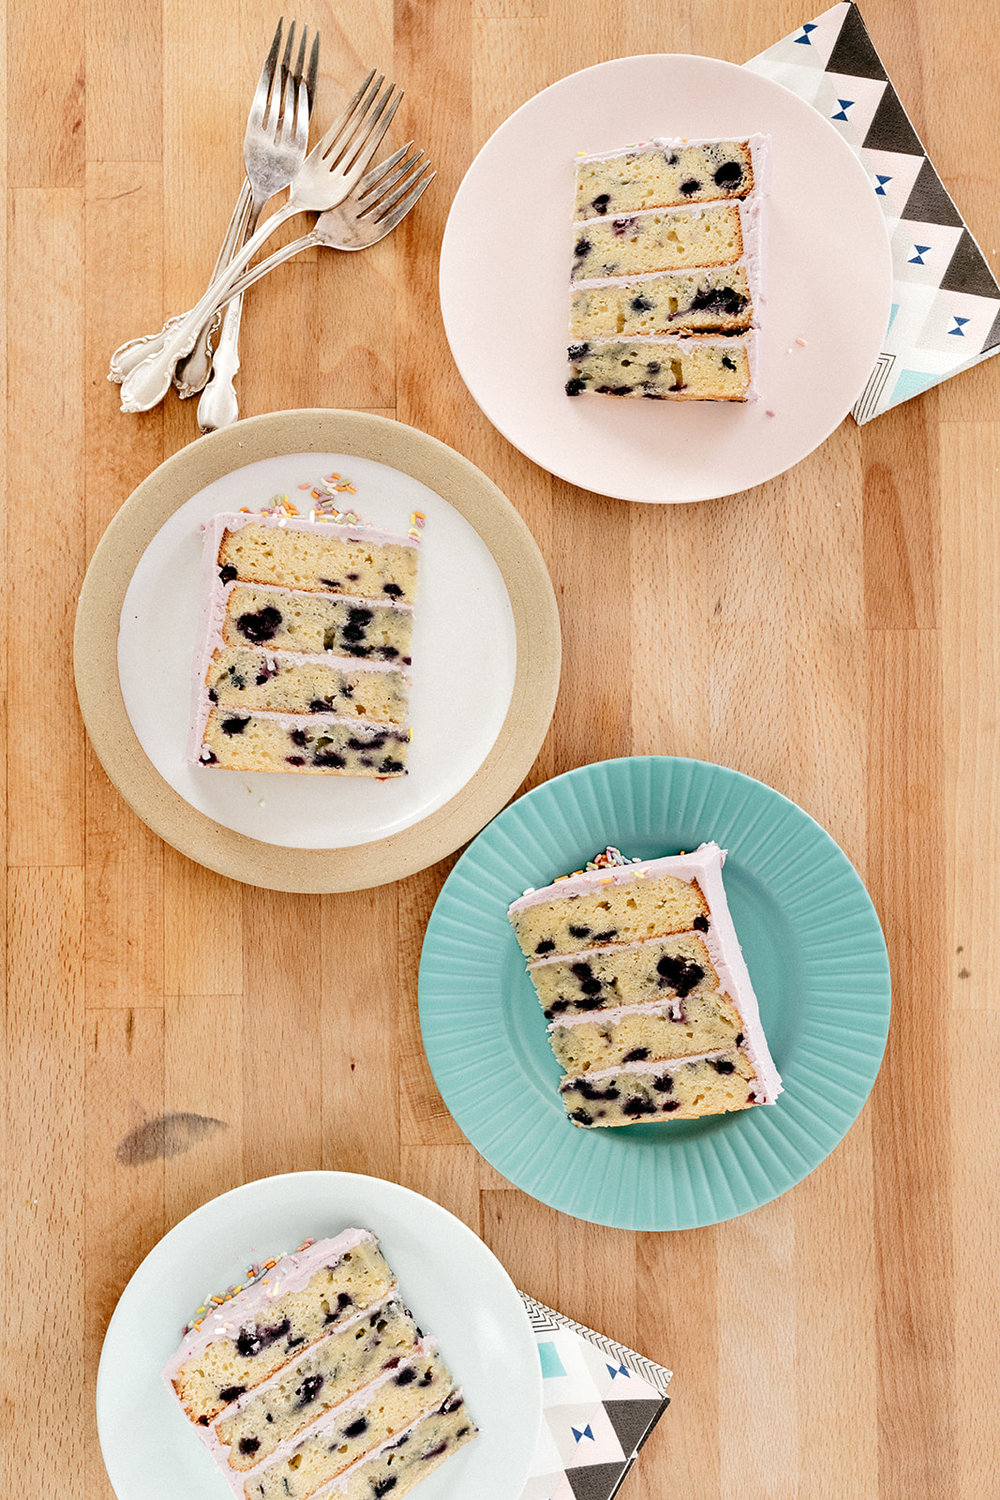 molly-yeh-blueberry-muffin-cake-4.jpg